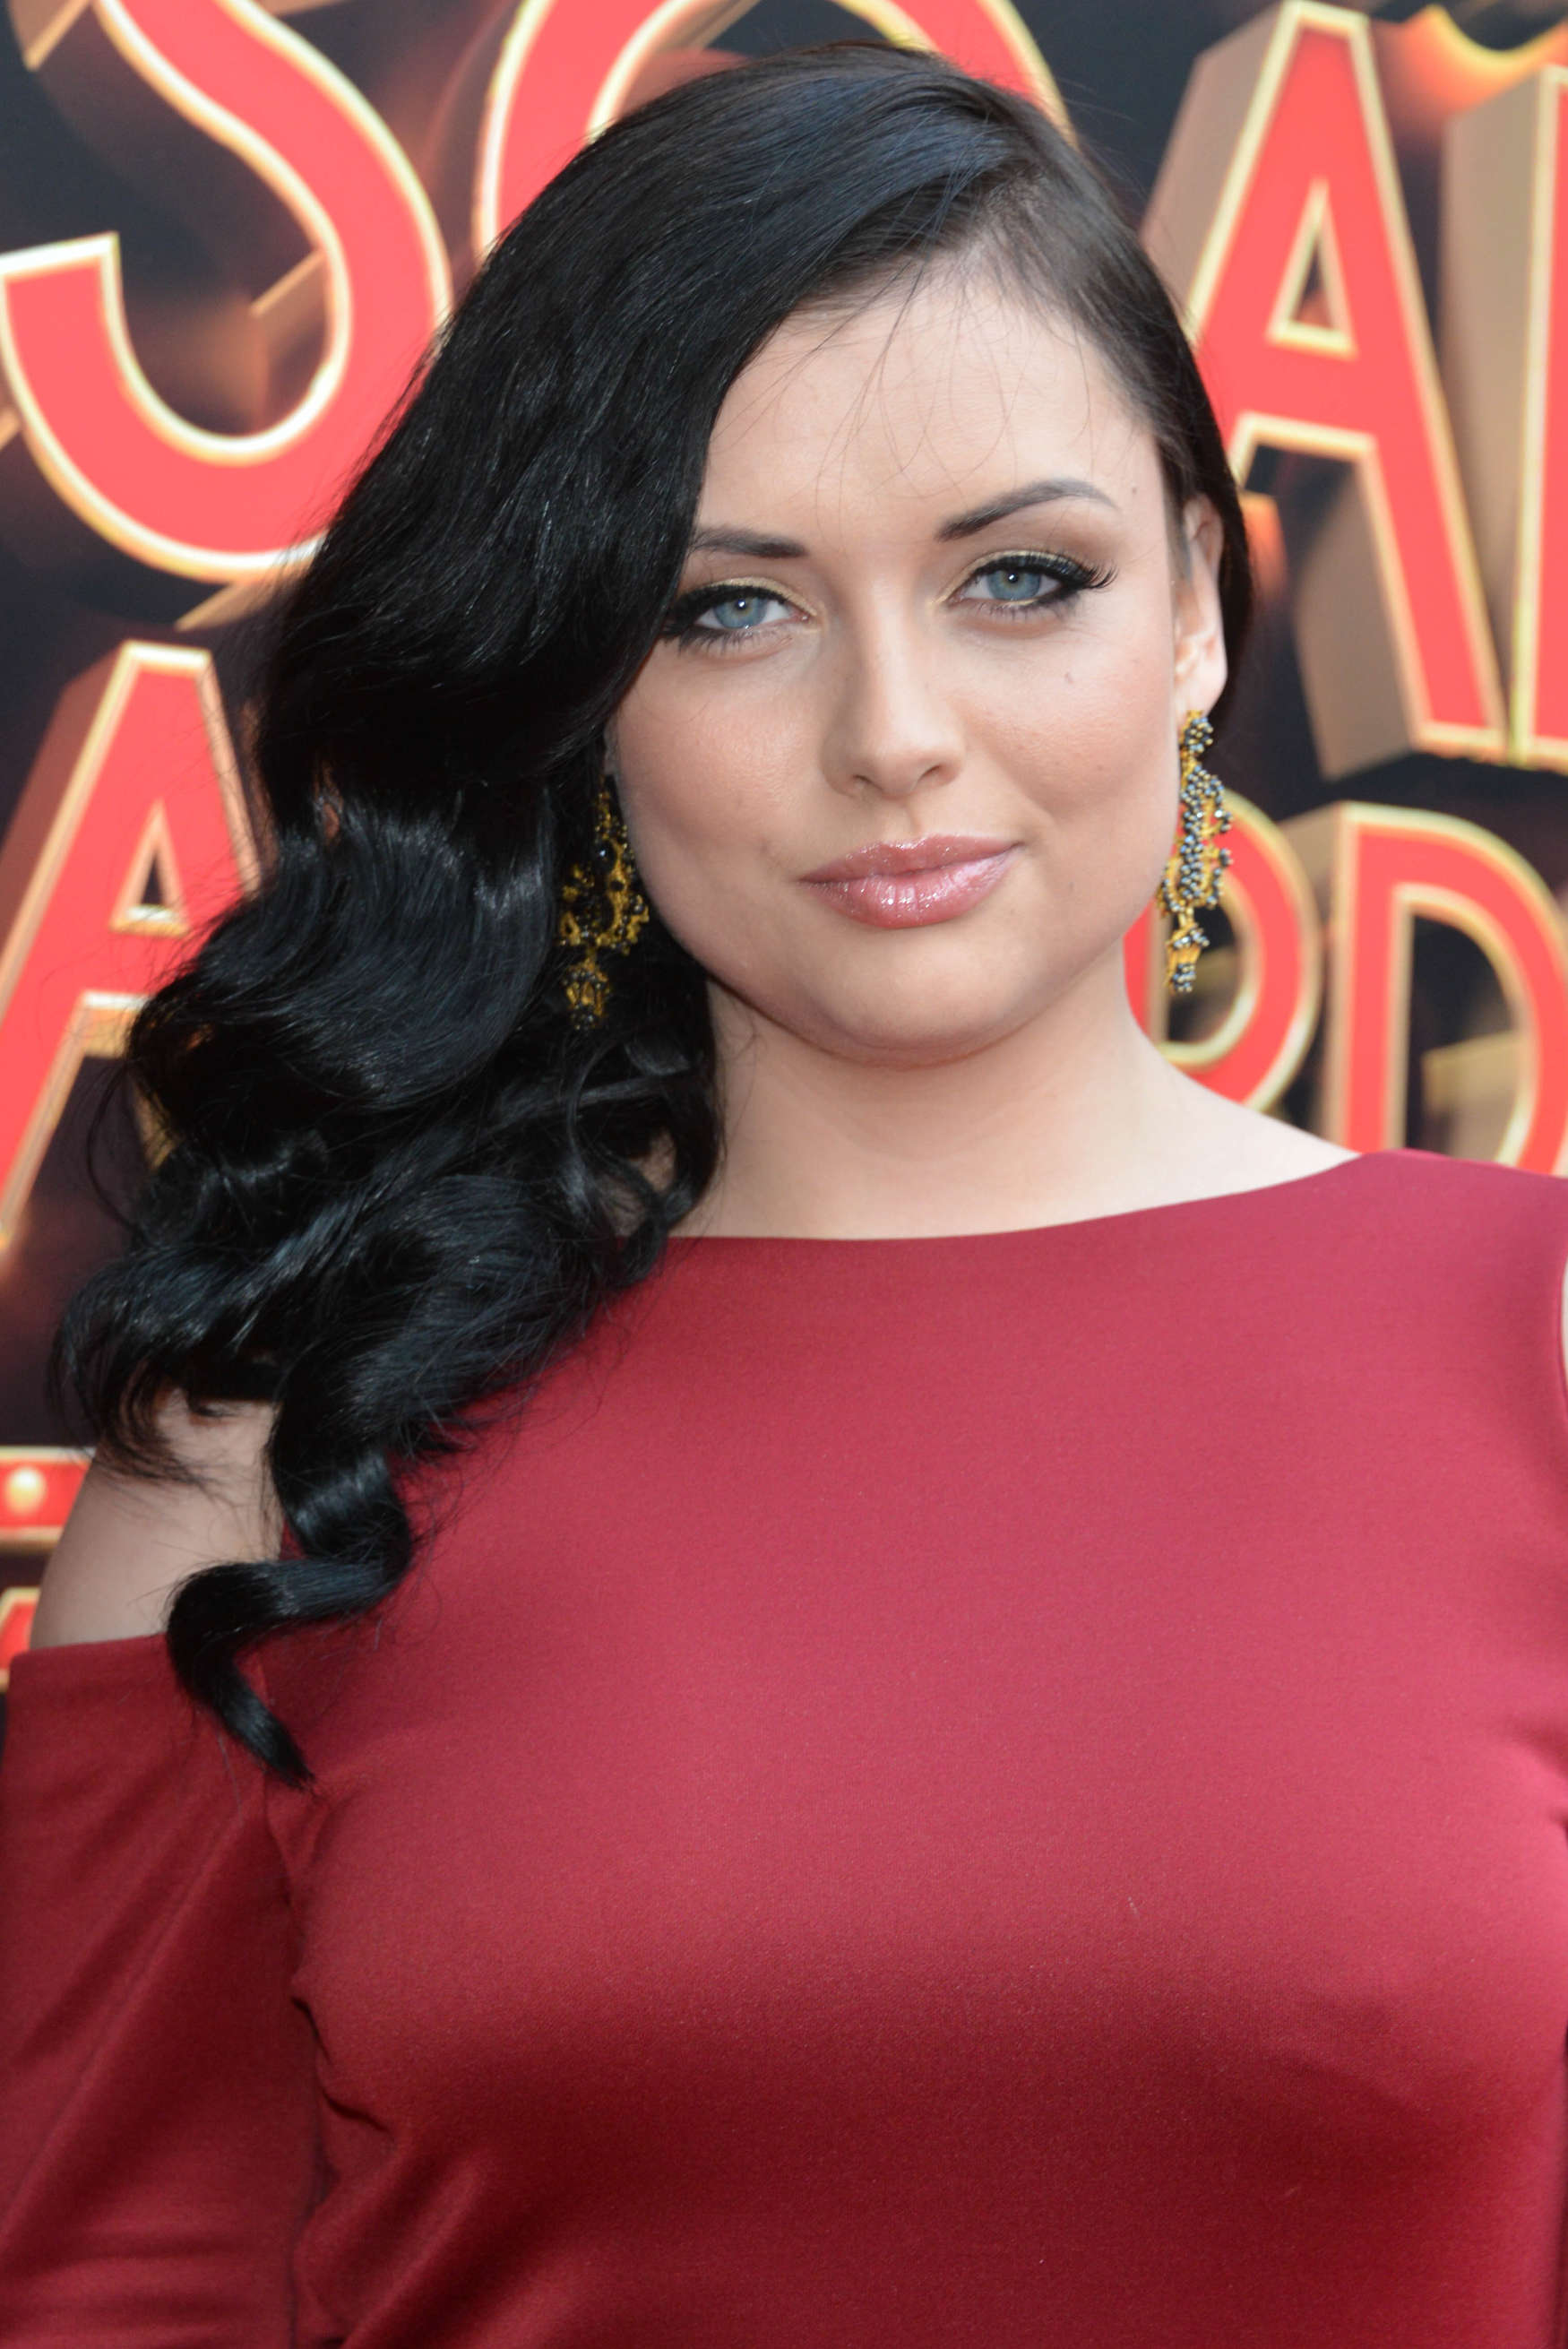 Tits Shona McGarty nudes (76 photo), Ass, Is a cute, Boobs, braless 2006